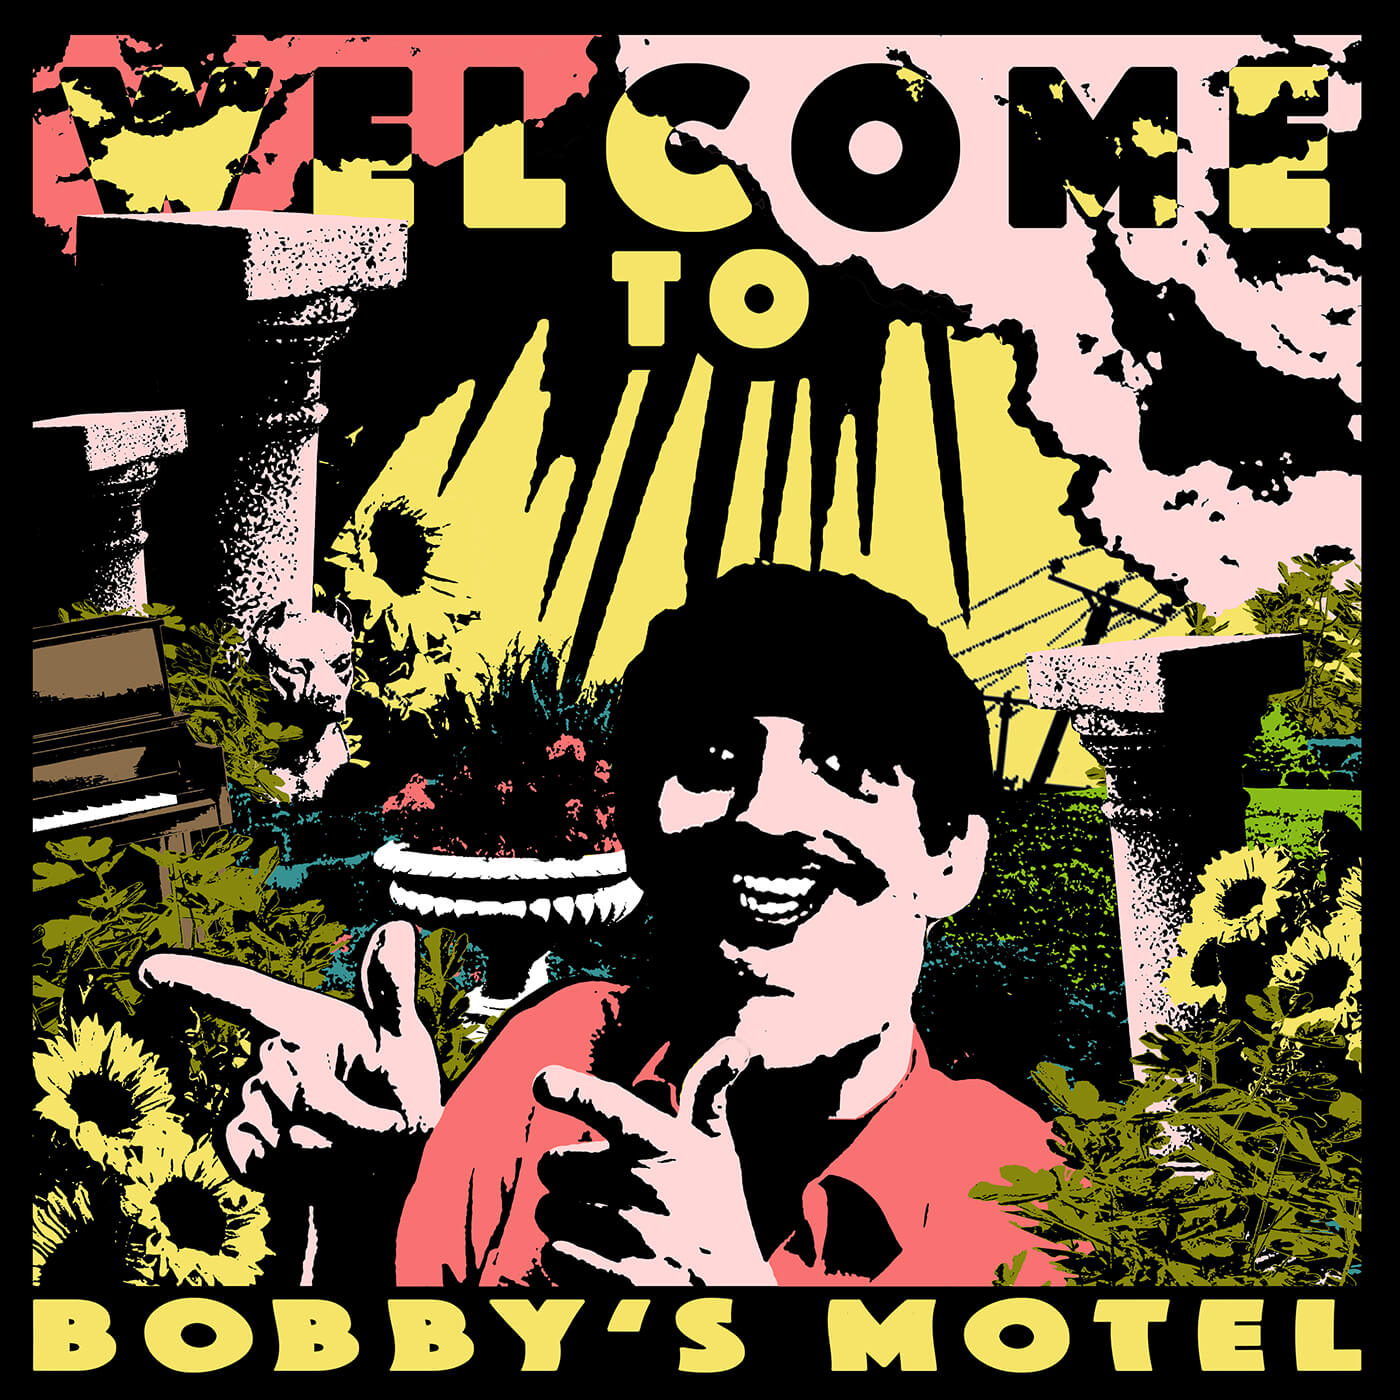 Pottery - Welcome To Buddy's Motel